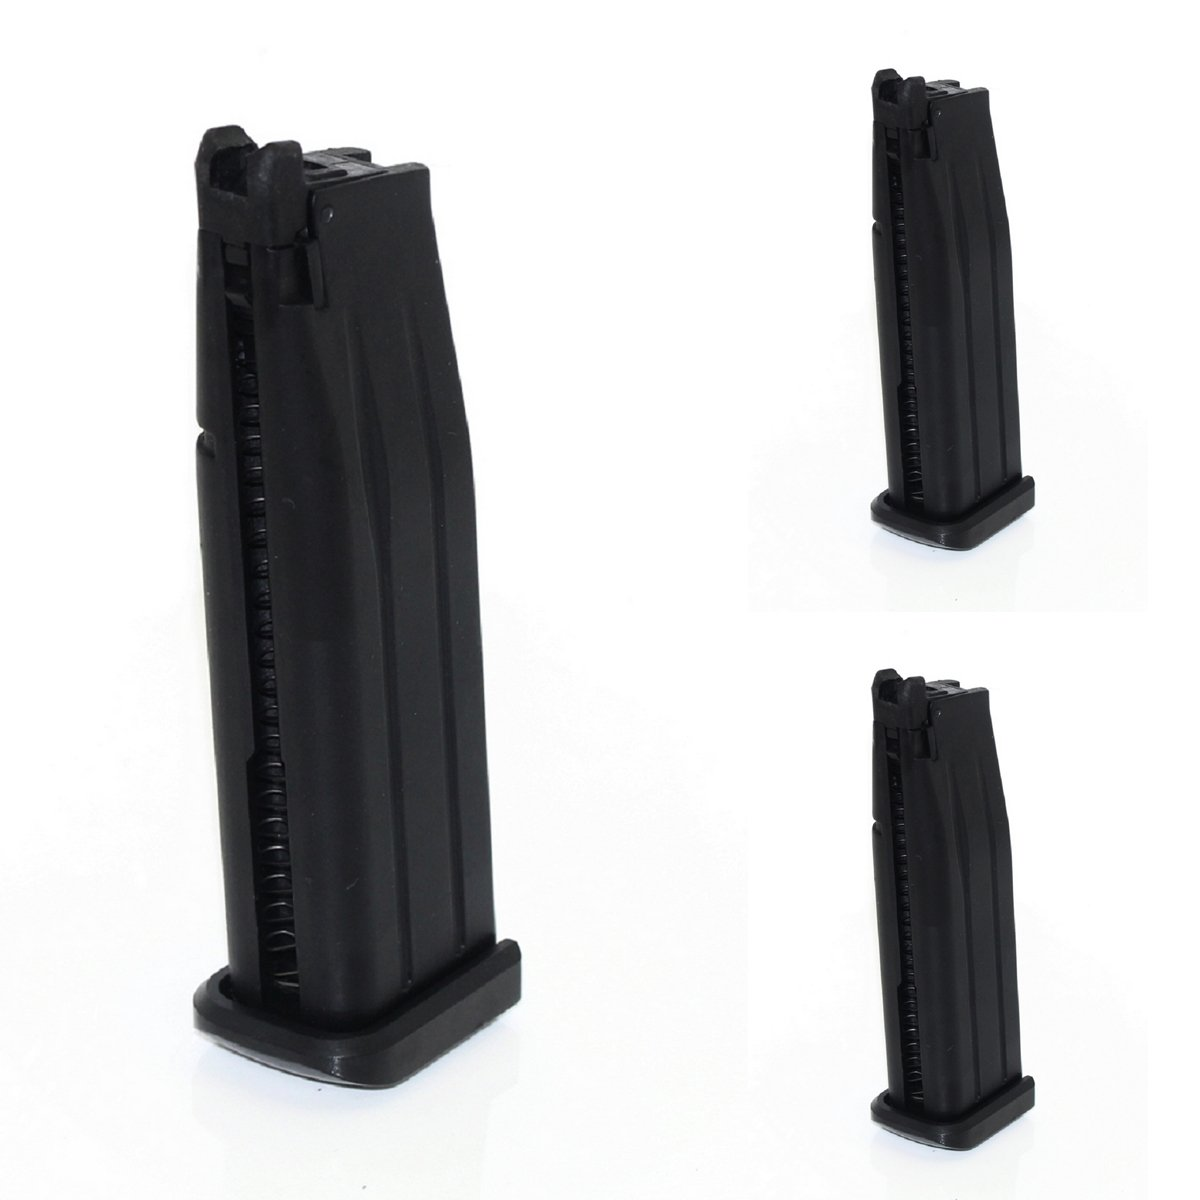 Airsoft Shooting Gear Army Force 3pcs 31rd Mag For Marui Hi-Capa 5.1 GBB Black